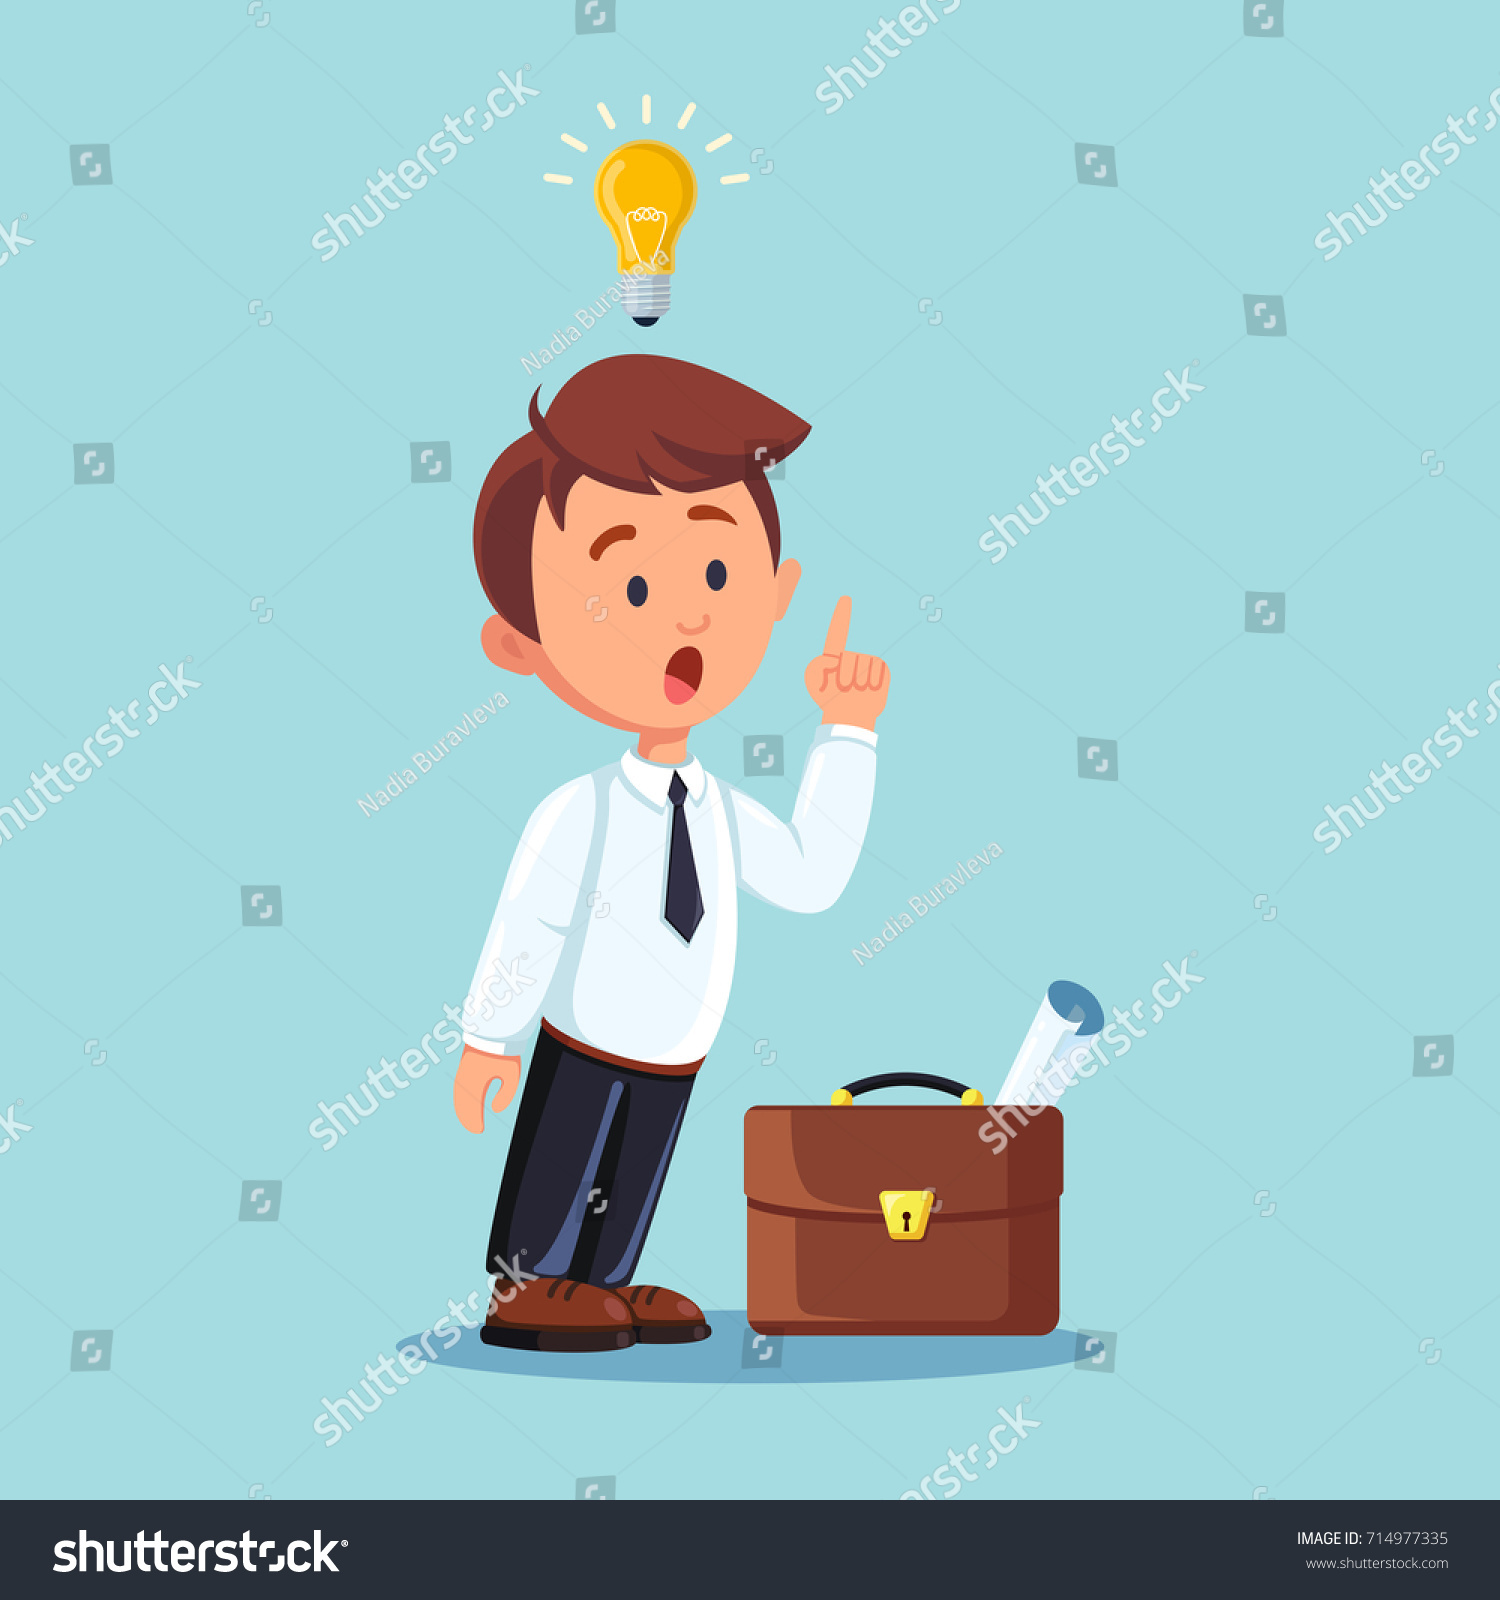 Businessman Character With Lightbulb And Briefcase Isolated On Background Man Thinking Pointing At Light